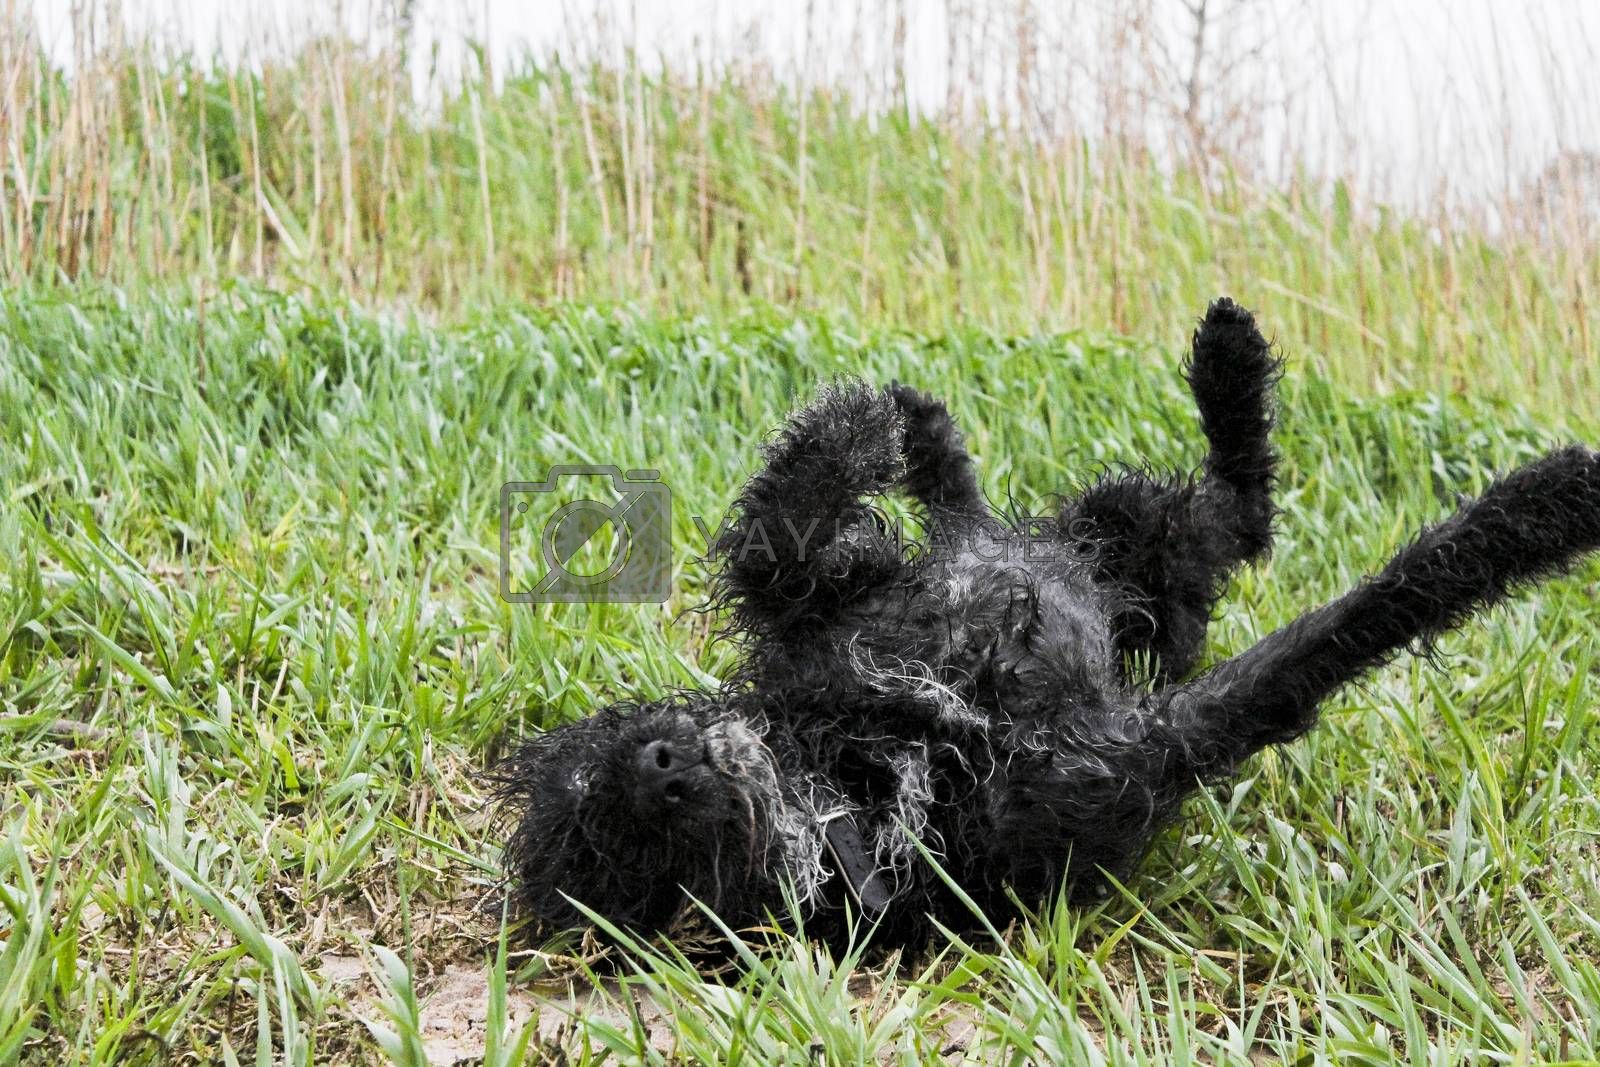 Royalty free image of Black wet and dirty dog very cute and playful. by Arkadij